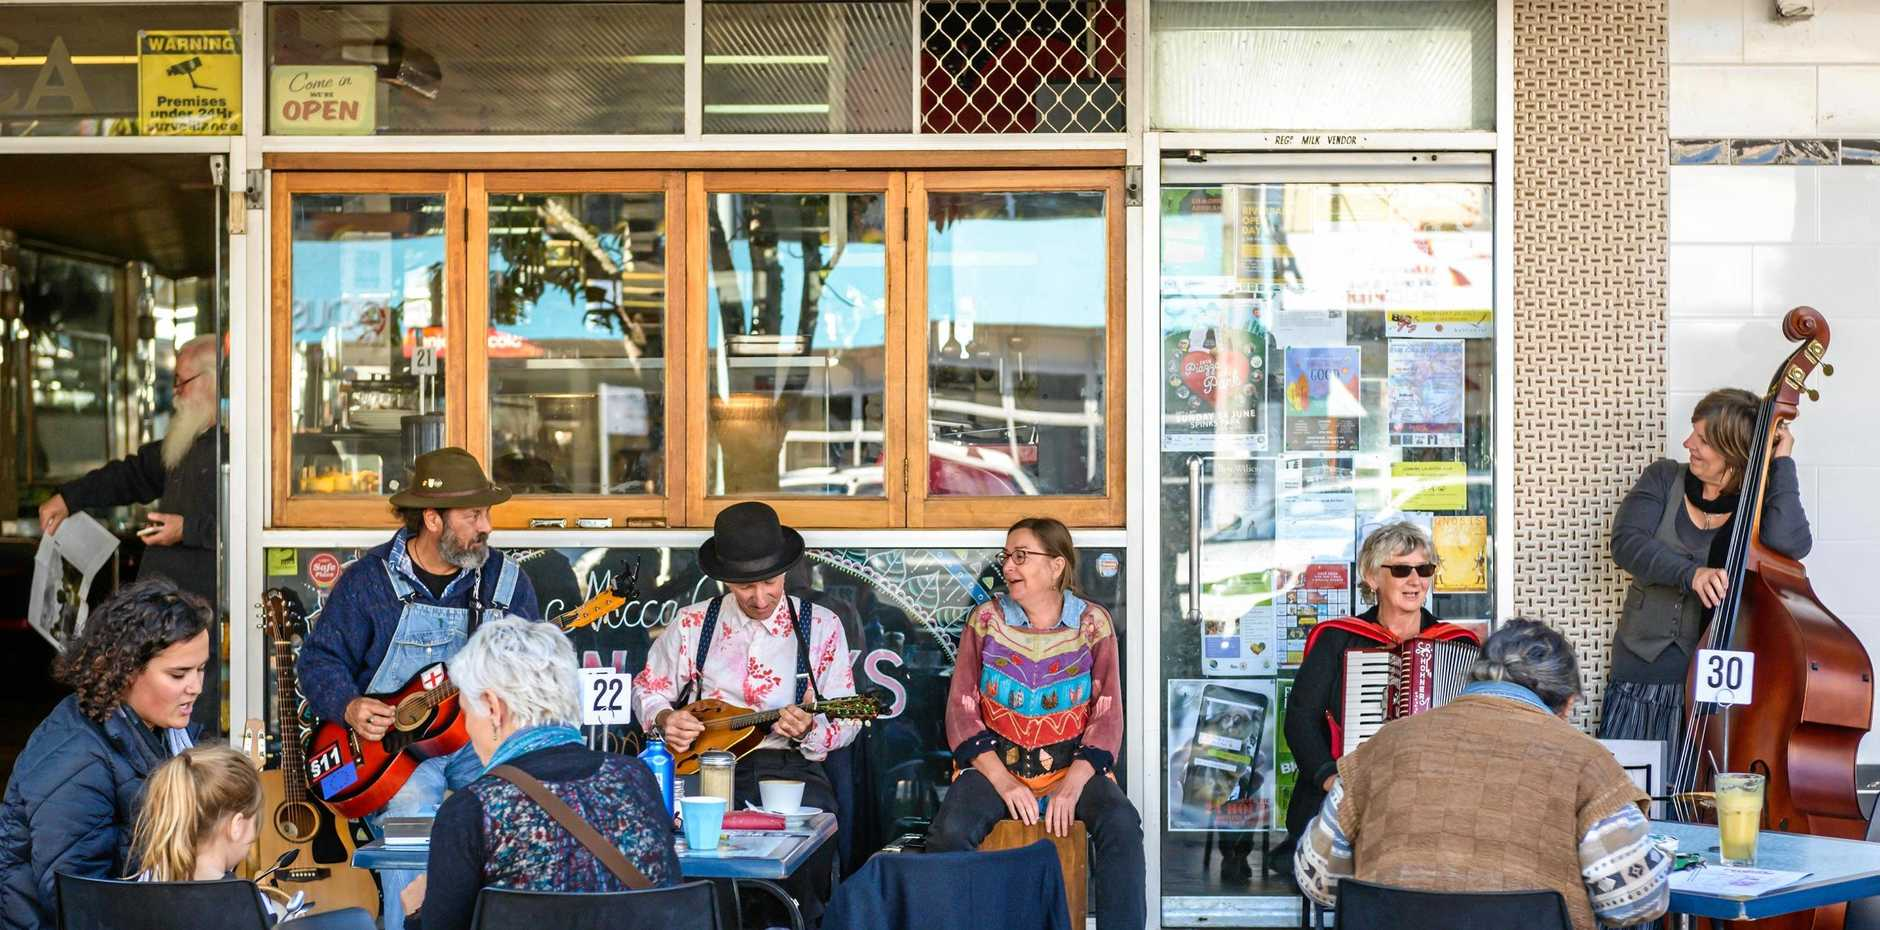 PERFORMERS ASSEMBLE: Lismore Lantern Parade organisers, LightnUp Inc, have partnered with the North Coast Institute of TAFE to create a Buskers Festival to be held in the Lismore CBD on the day of the parade (Saturday 22 June) between 10am and 2pm.